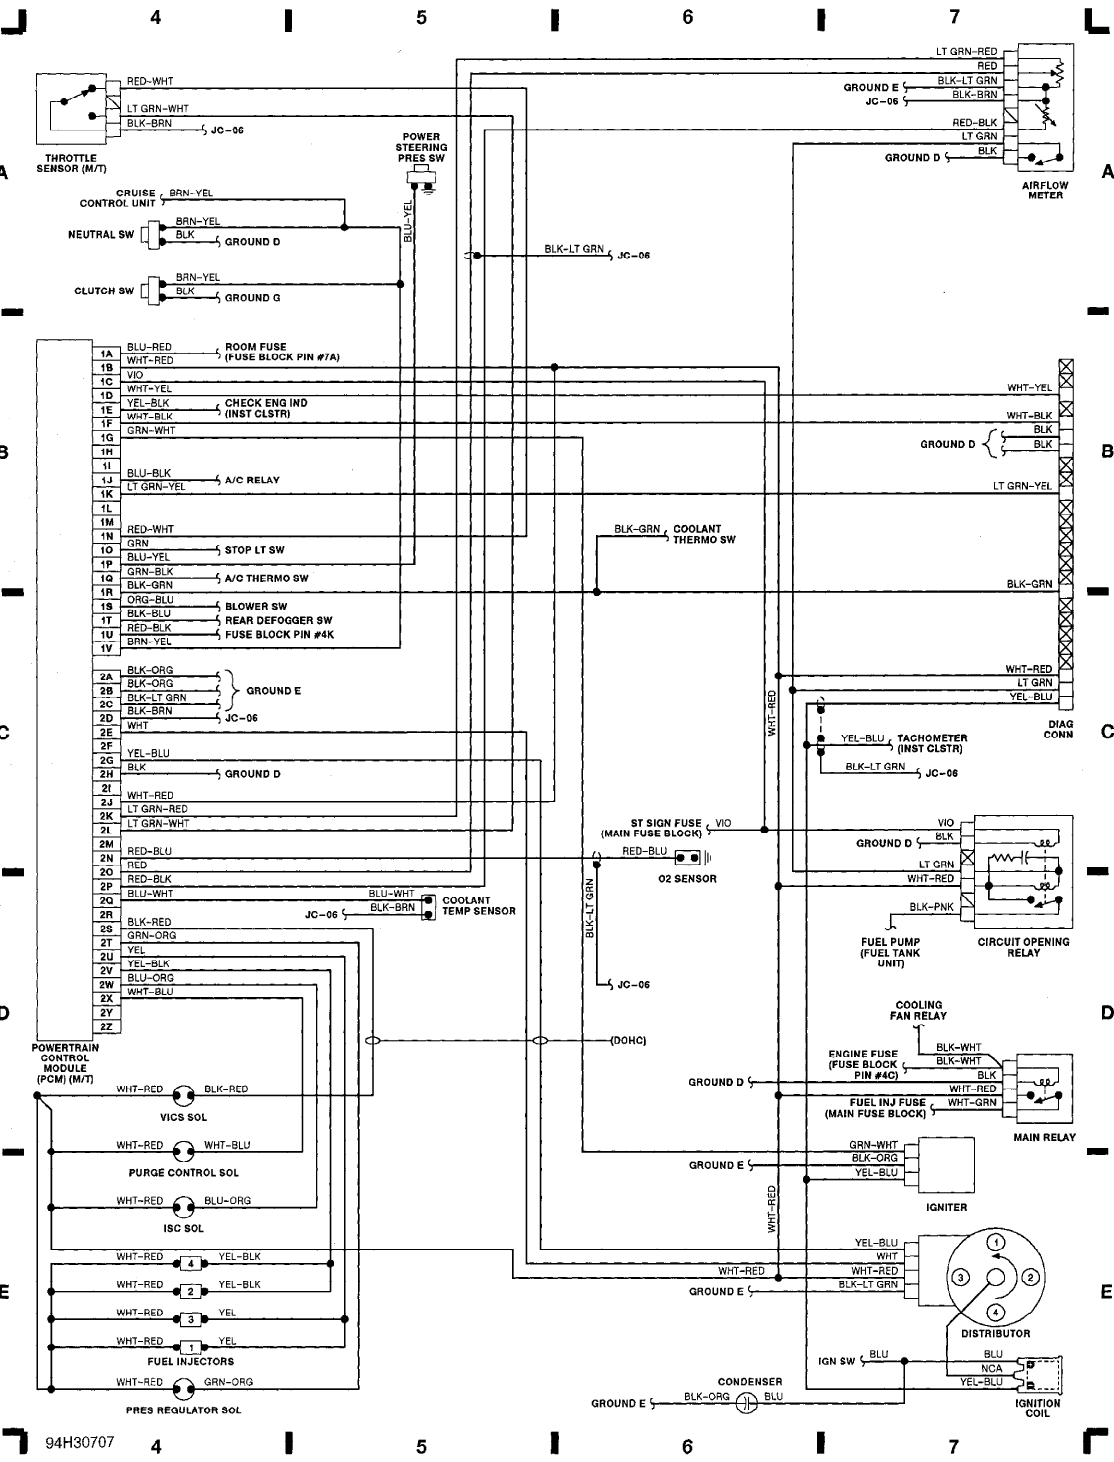 [DIAGRAM] 2001 Mazda Protege Wiring Diagram Original FULL